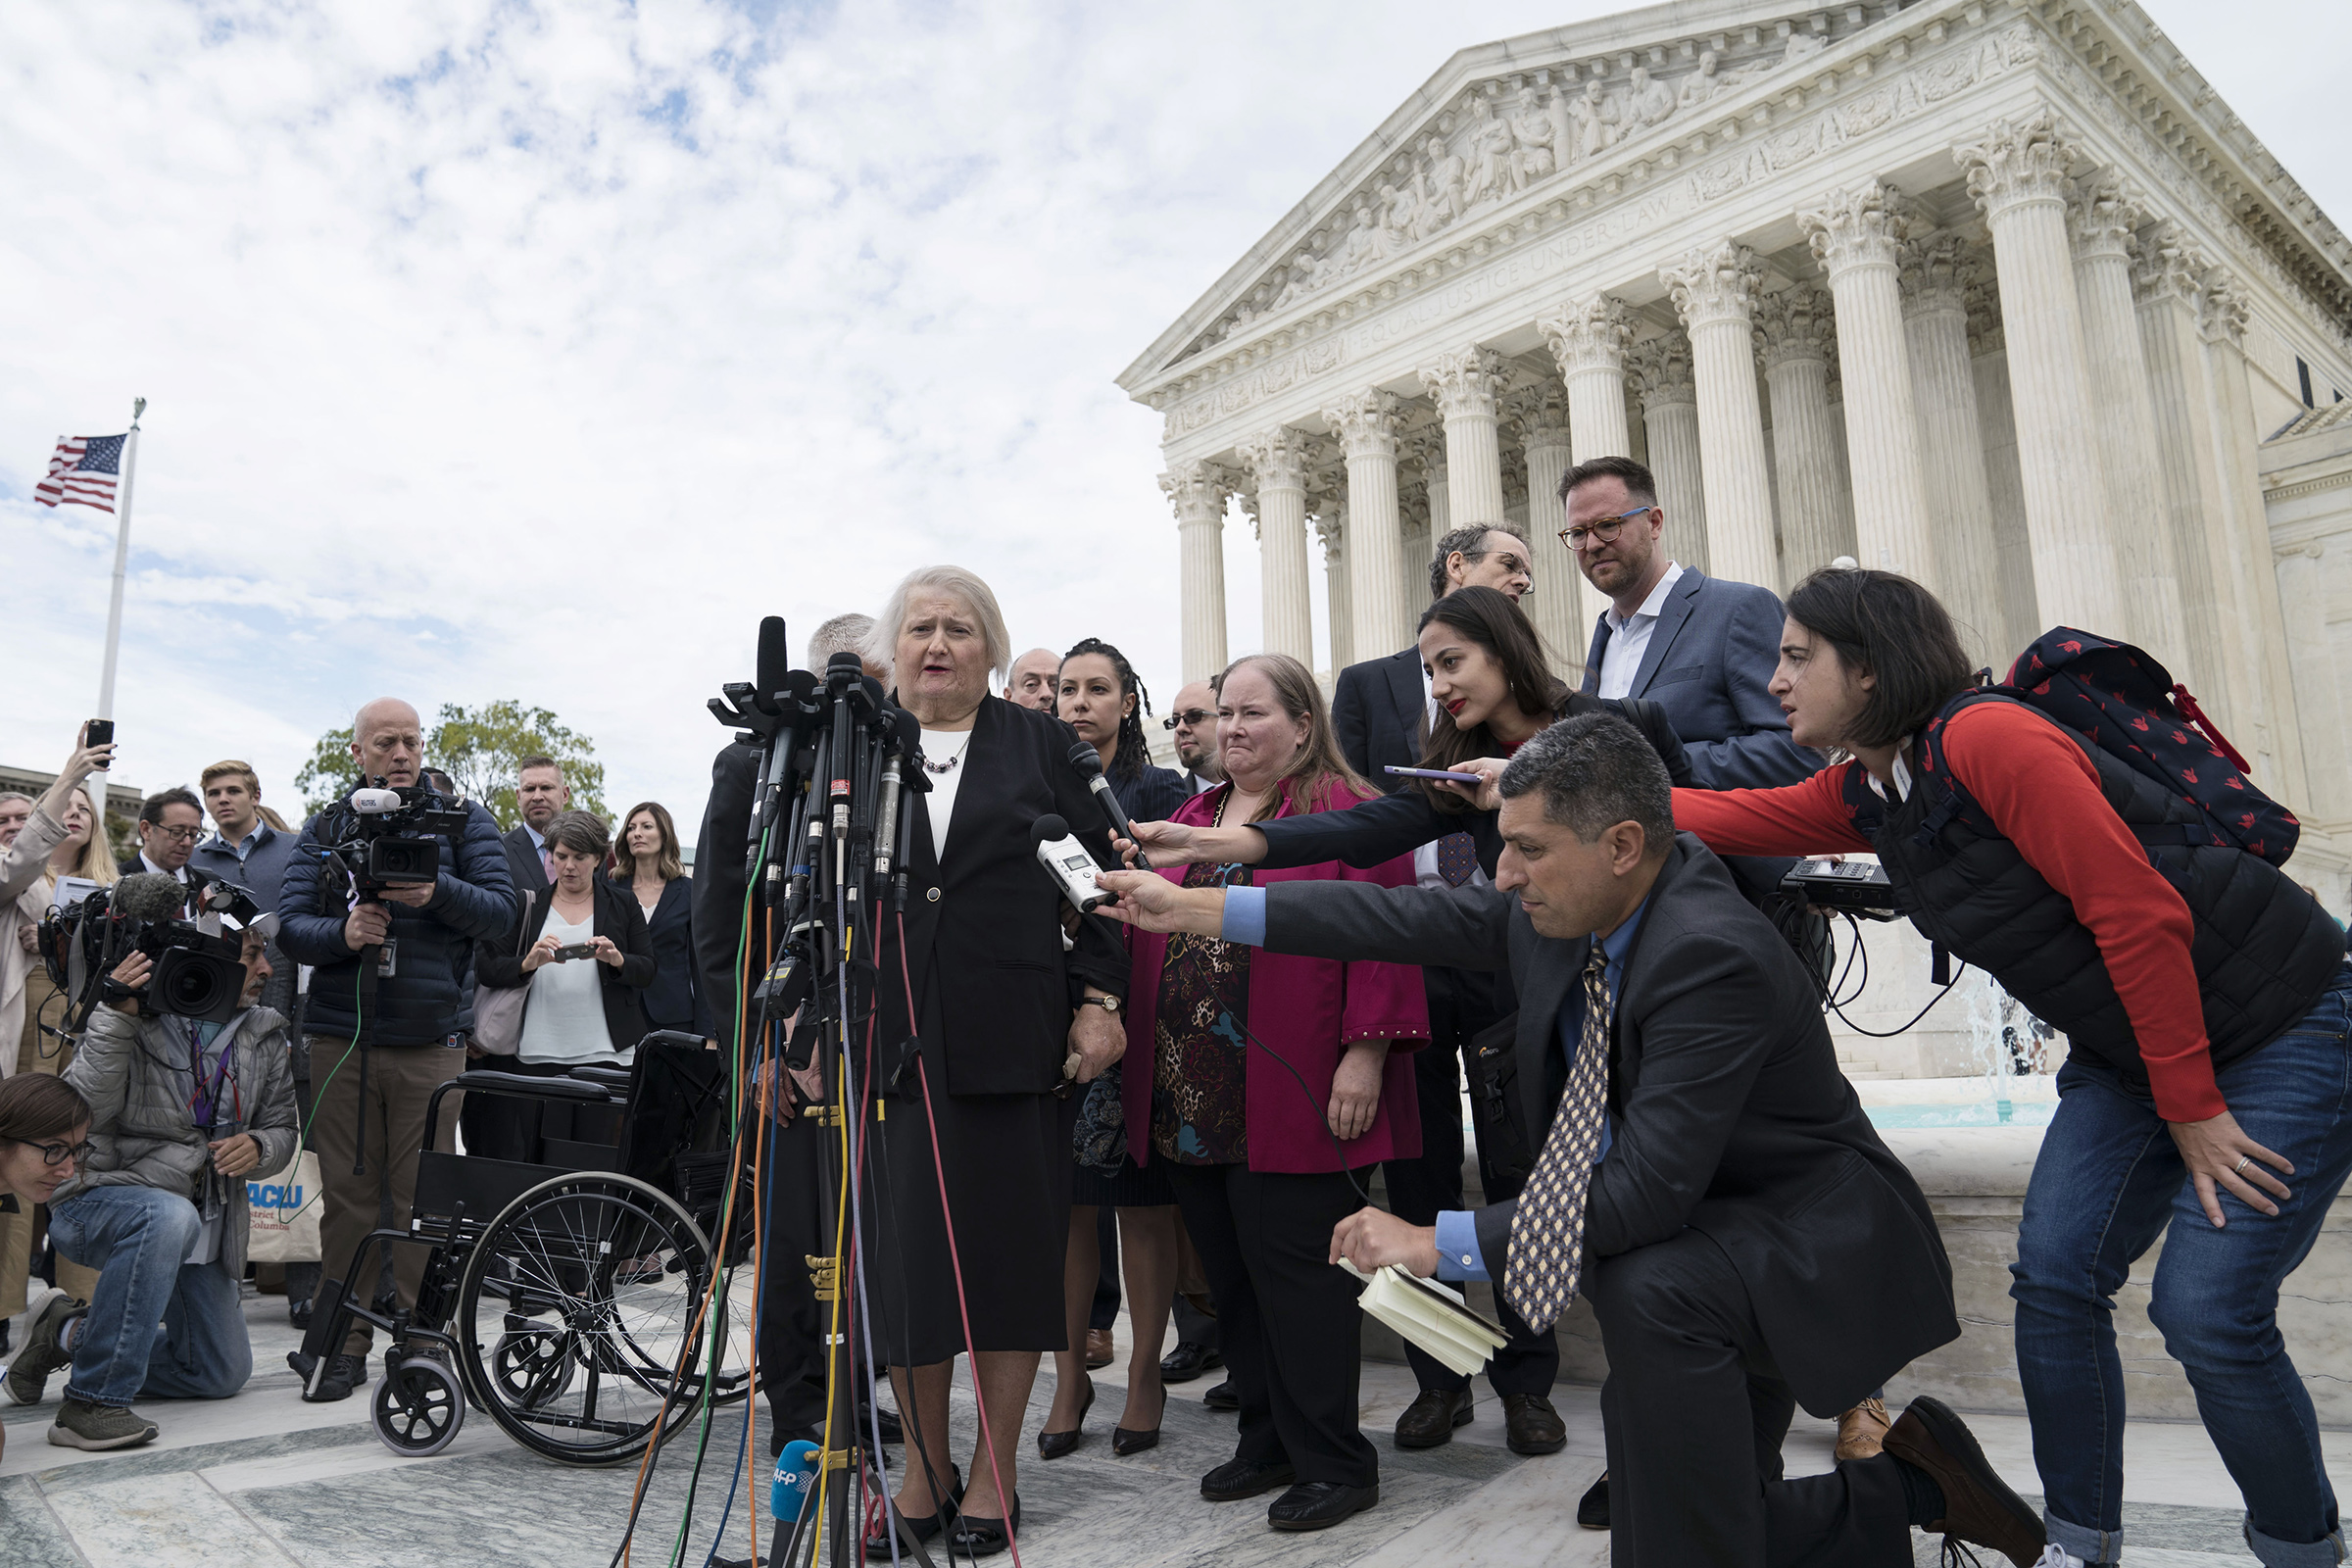 Aimee Stephens speaks outside of the Supreme Court in Washington, D.C., on Oct. 8, 2019.